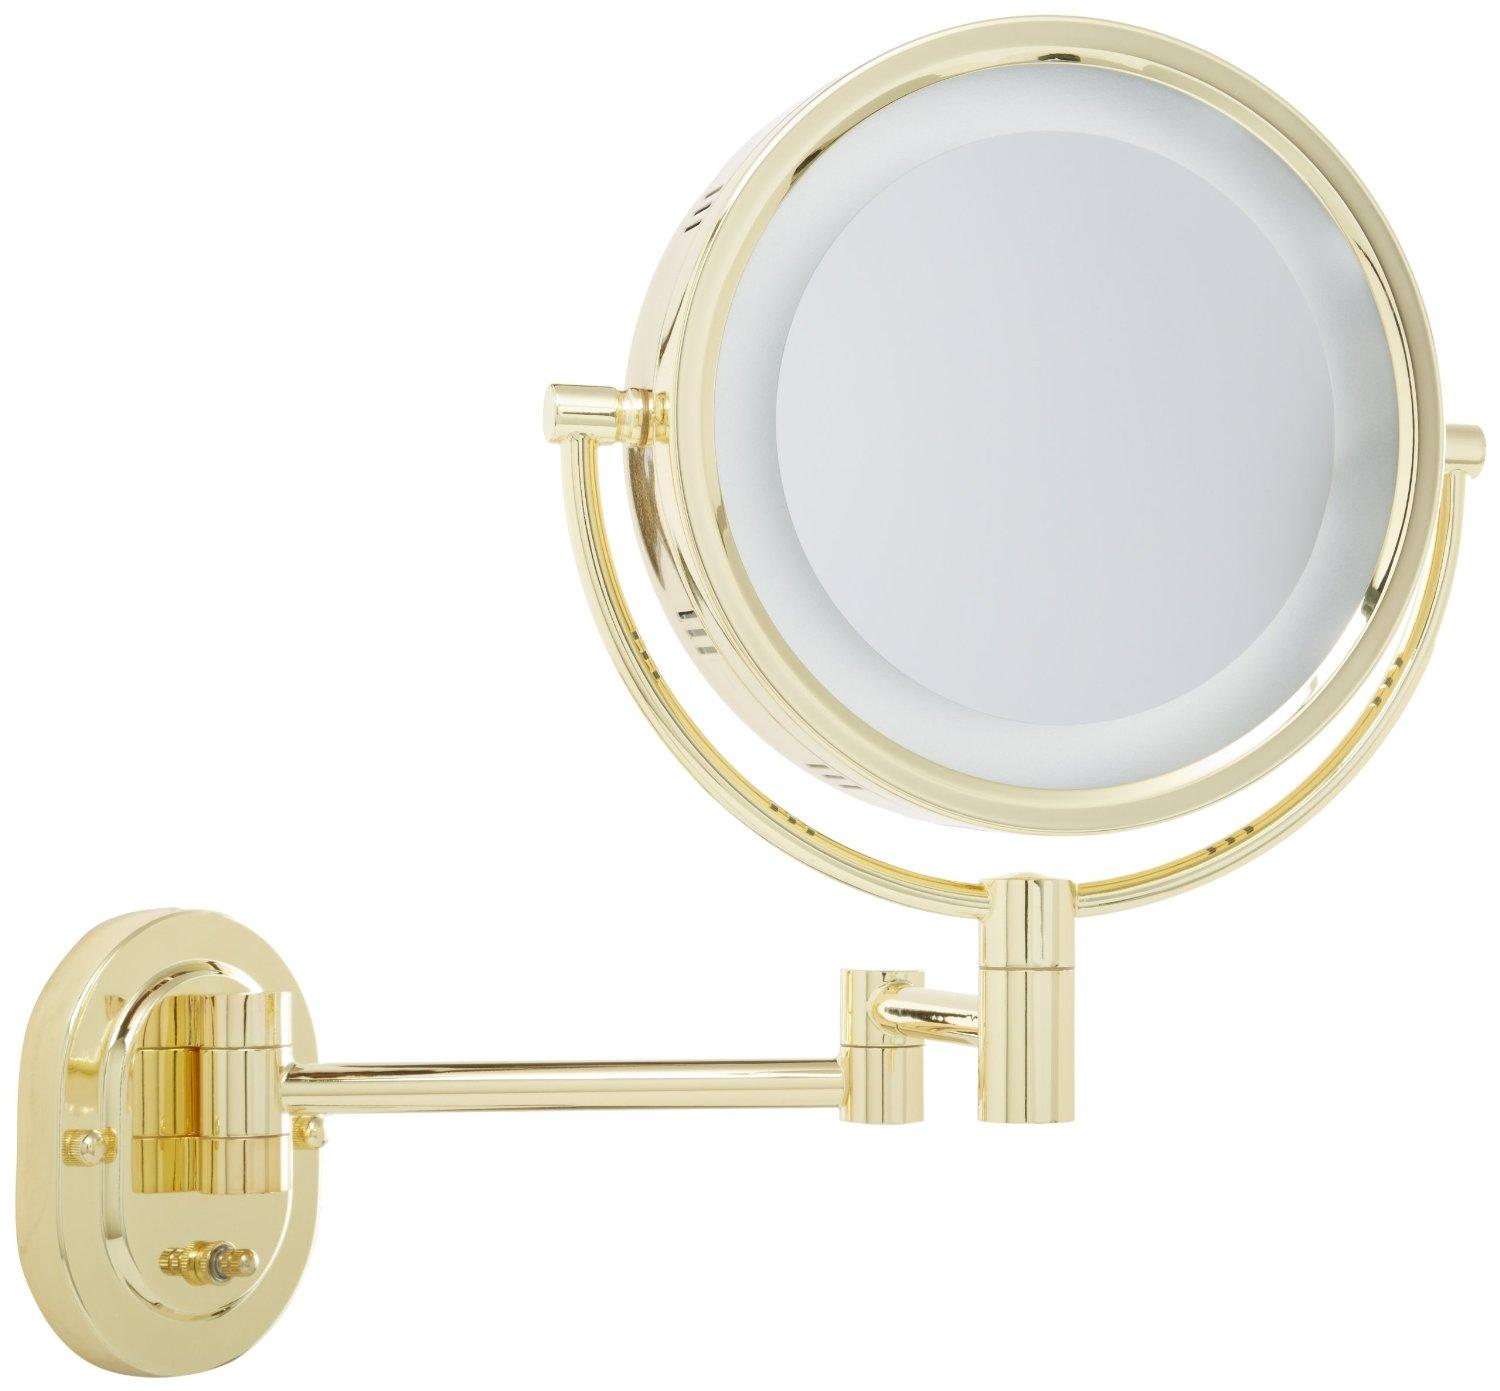 Amazon jerdon hl65g 8 inch lighted wall mount makeup mirror view larger amipublicfo Choice Image